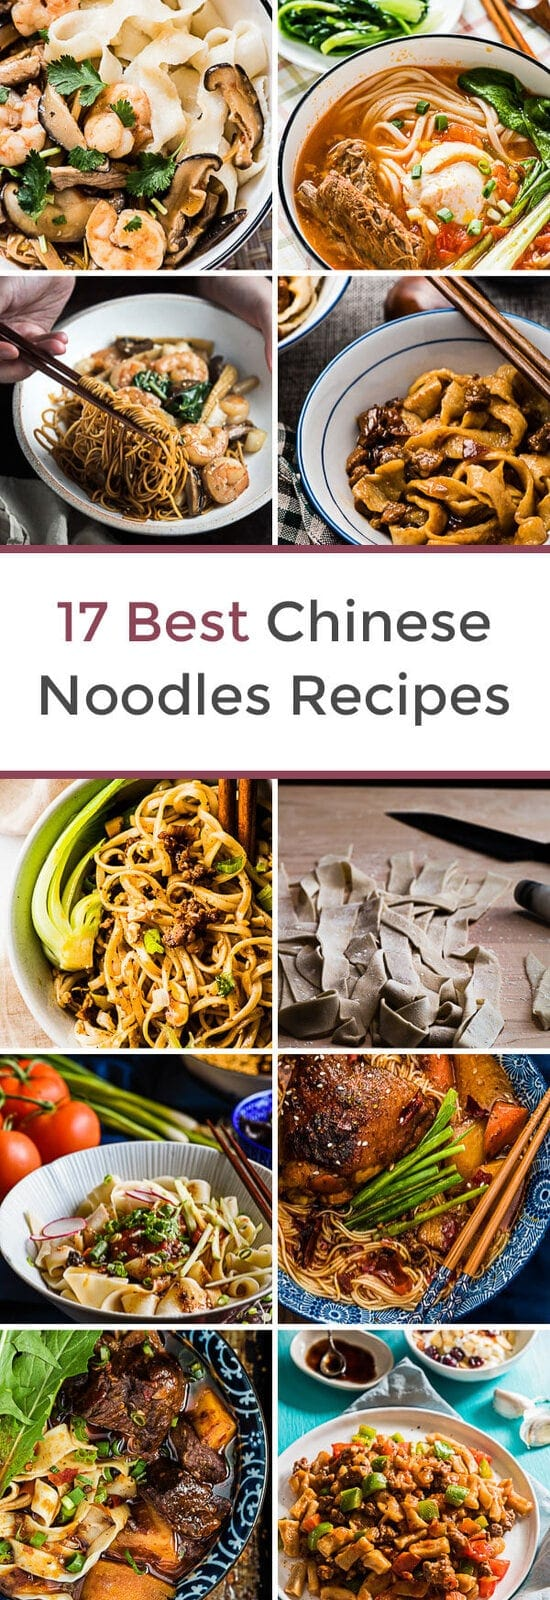 17 Best Chinese Noodles Recipes